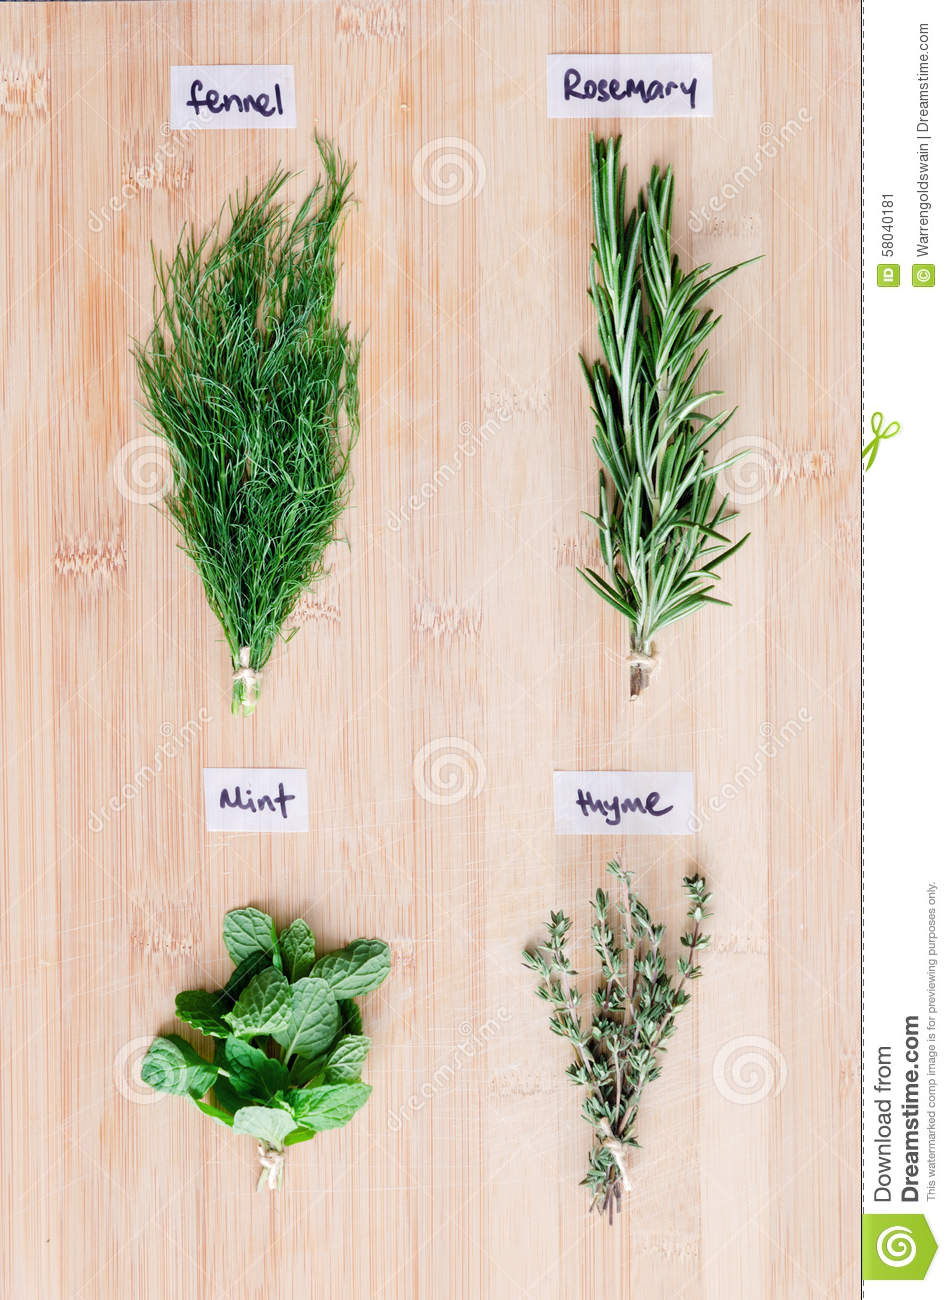 Overhead View Of Fresh Herbs With Names On Wooden Board Stock ...